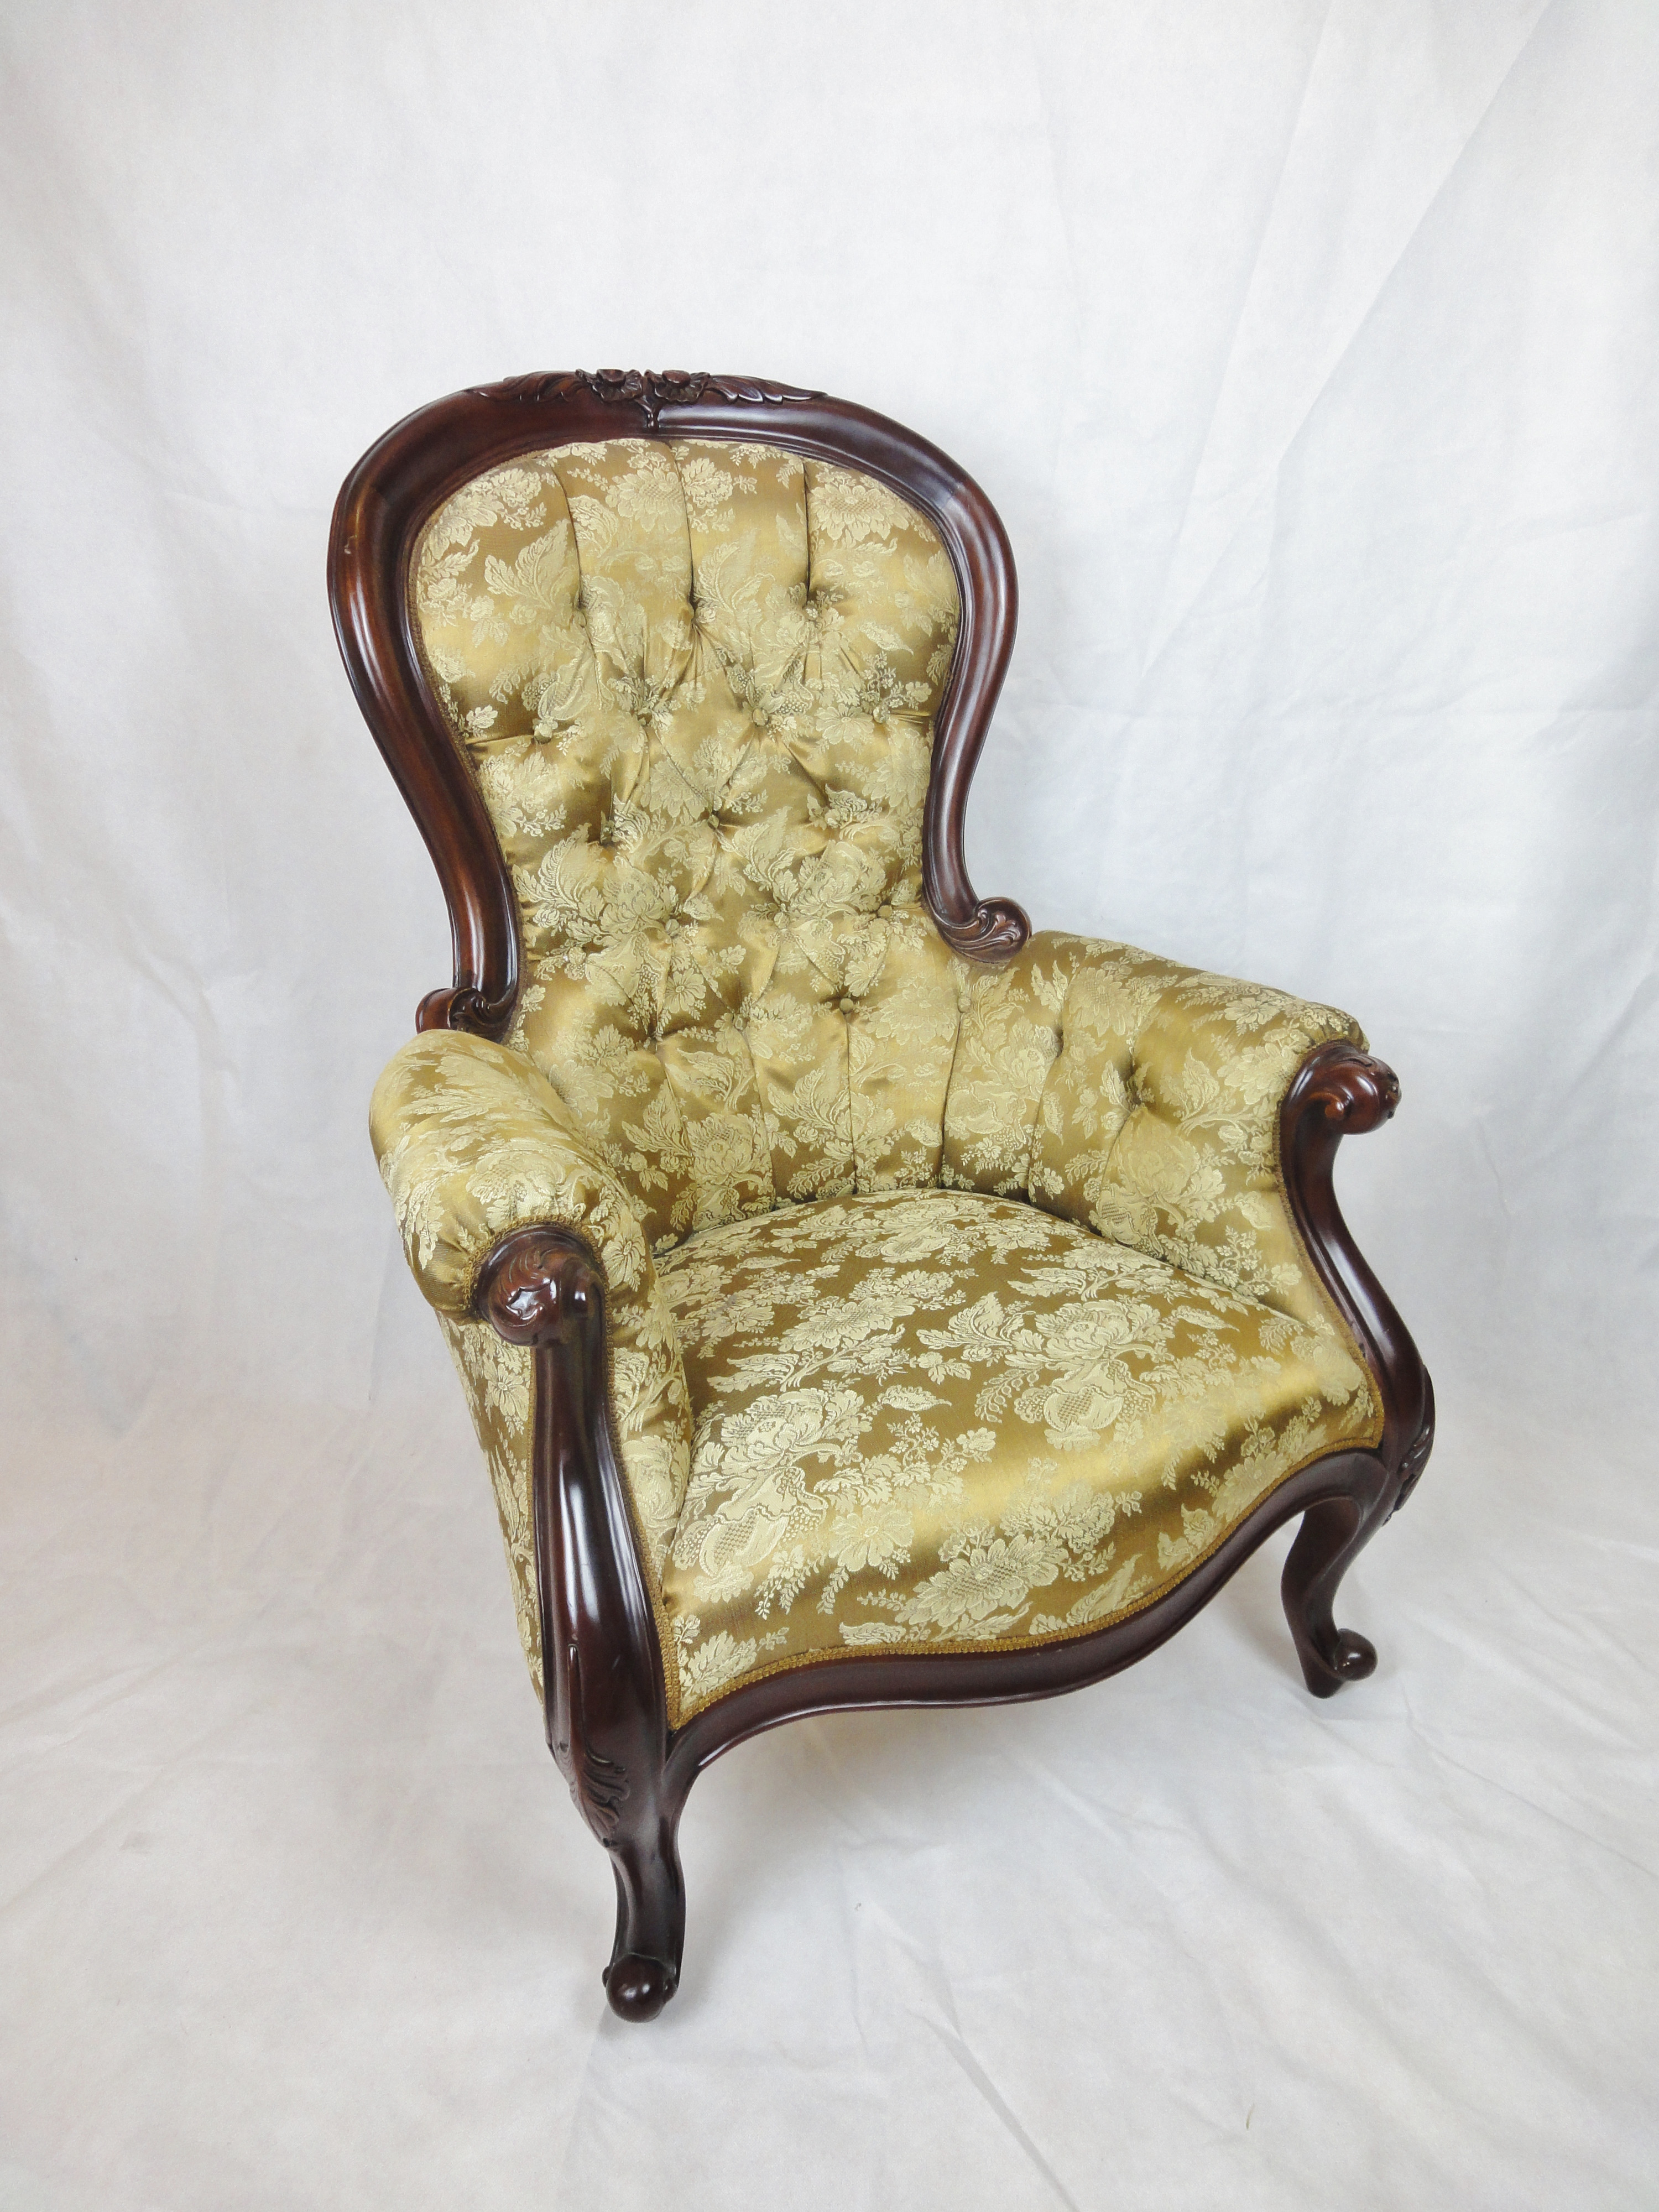 Antique Reproduction Furniture Uk Fresh Antique and Reproduction Chairs